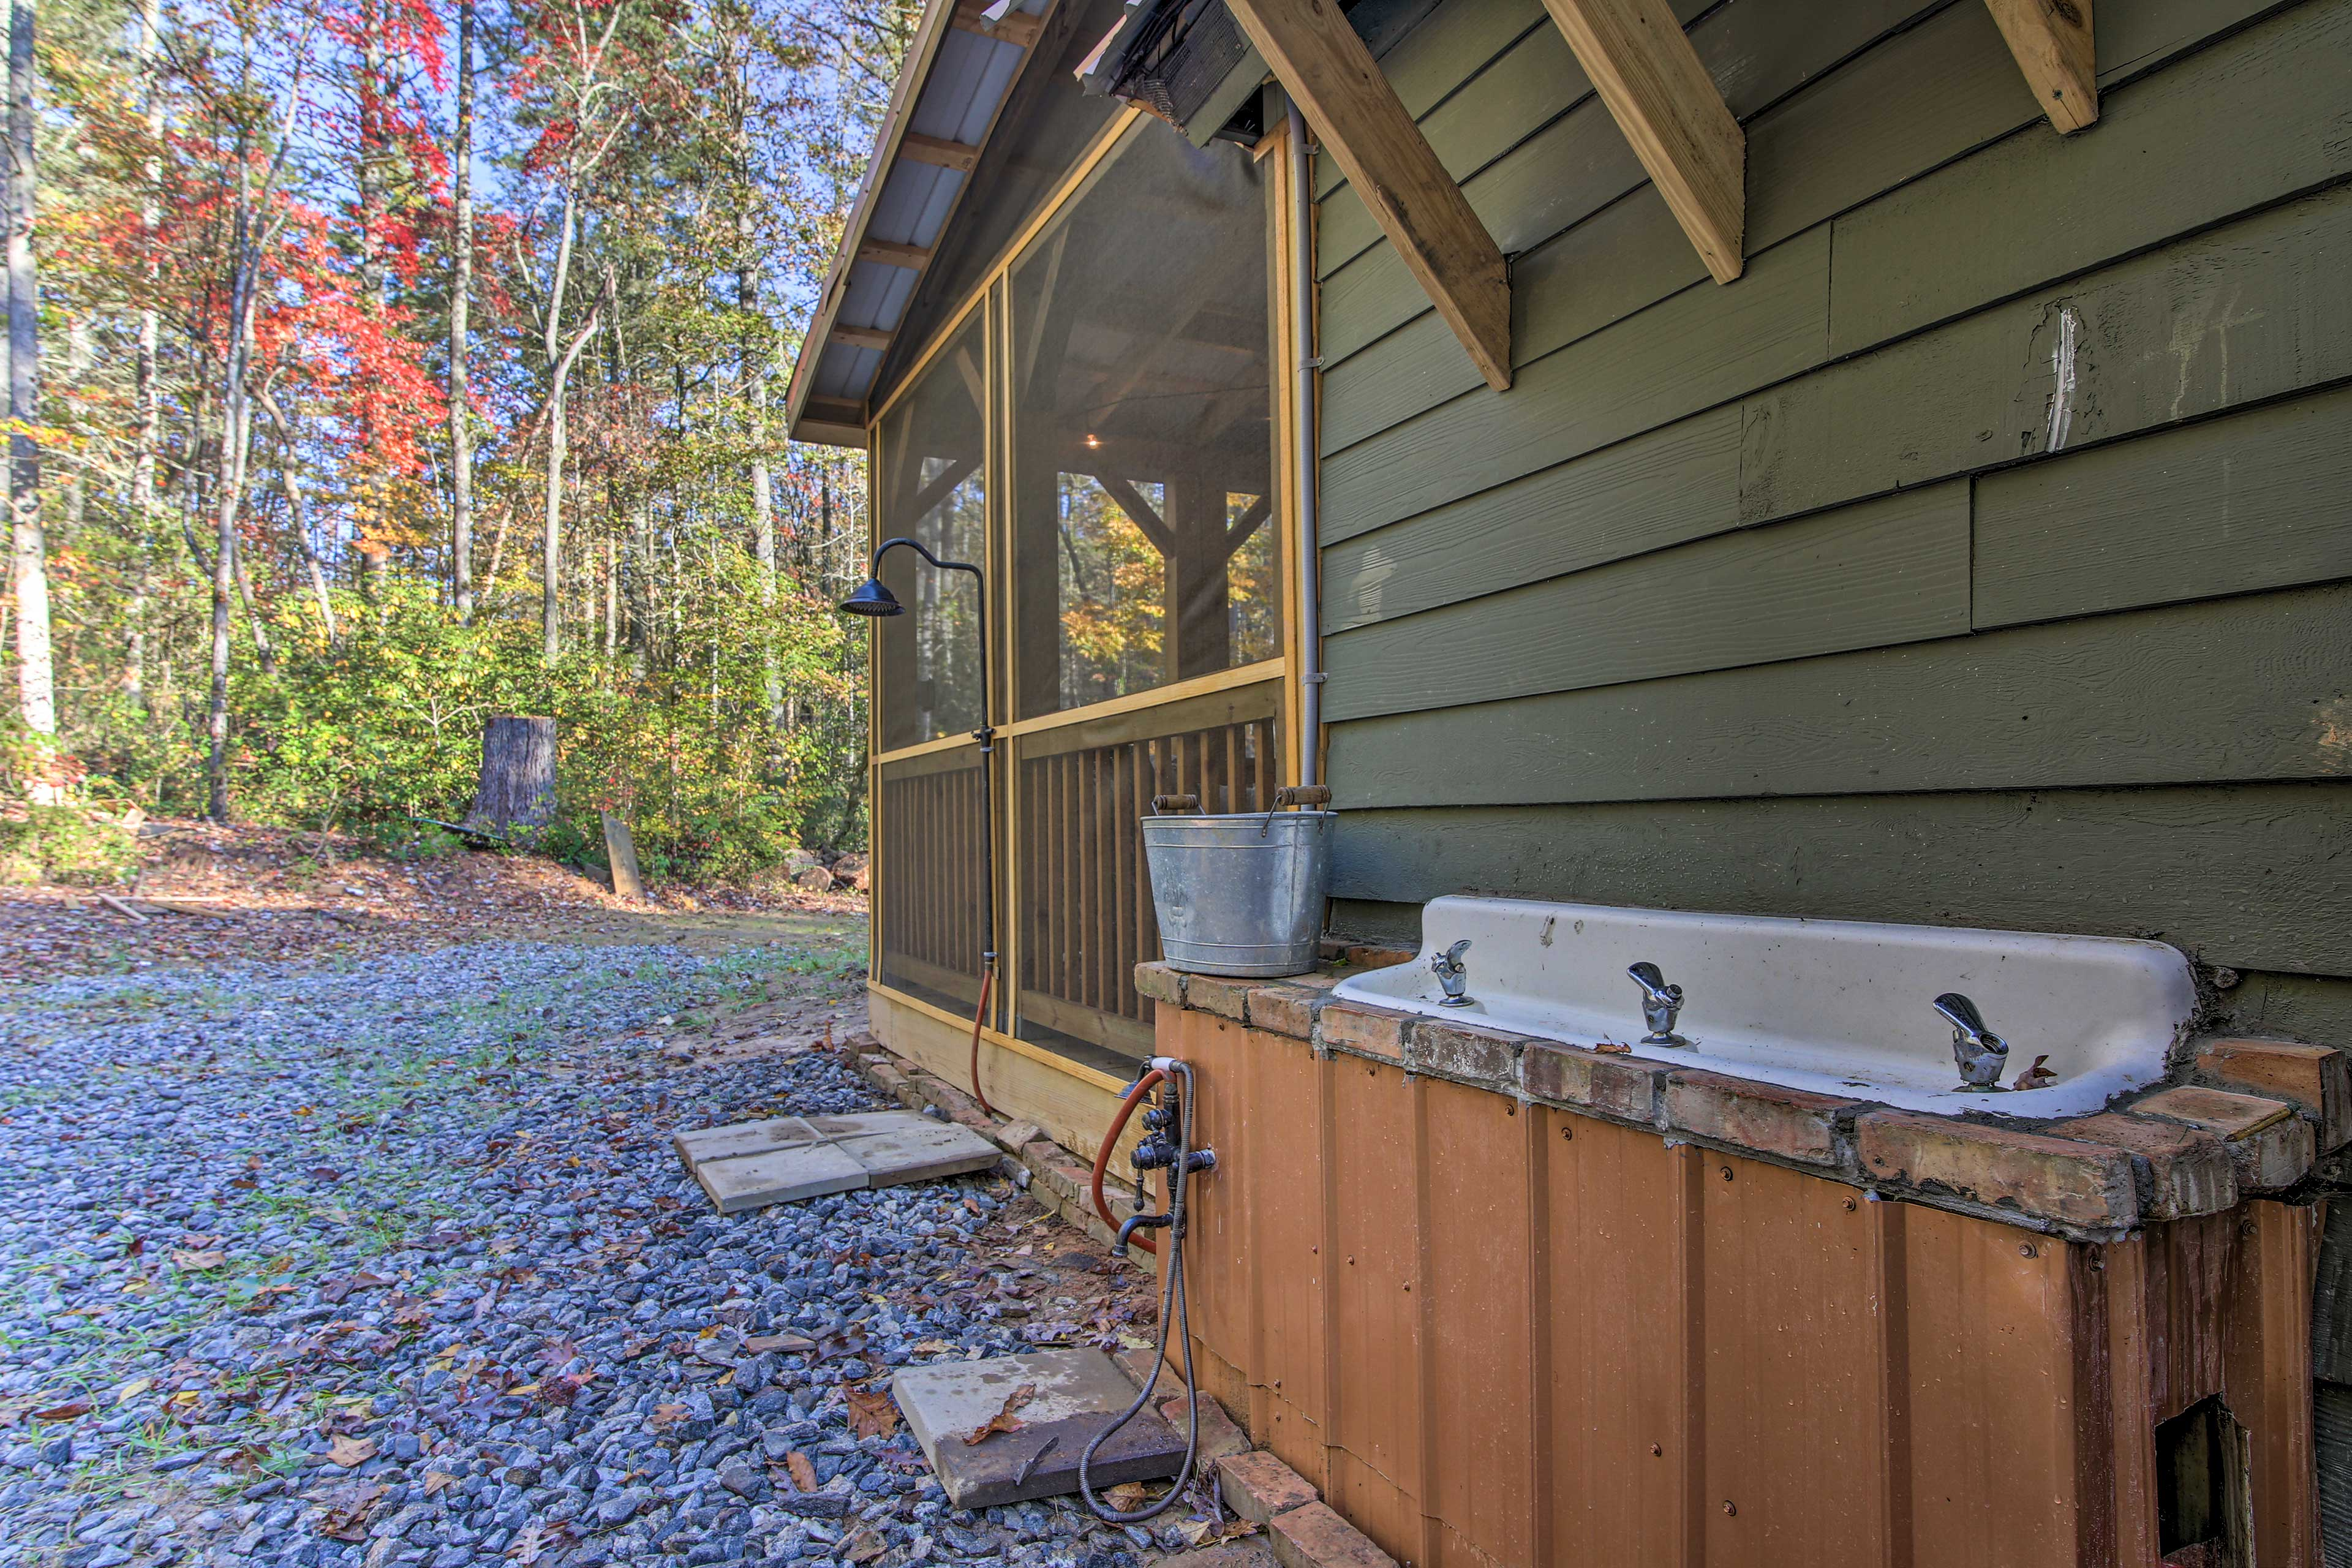 Adding to the home's authenticity, there is an outdoor shower and garden sink.